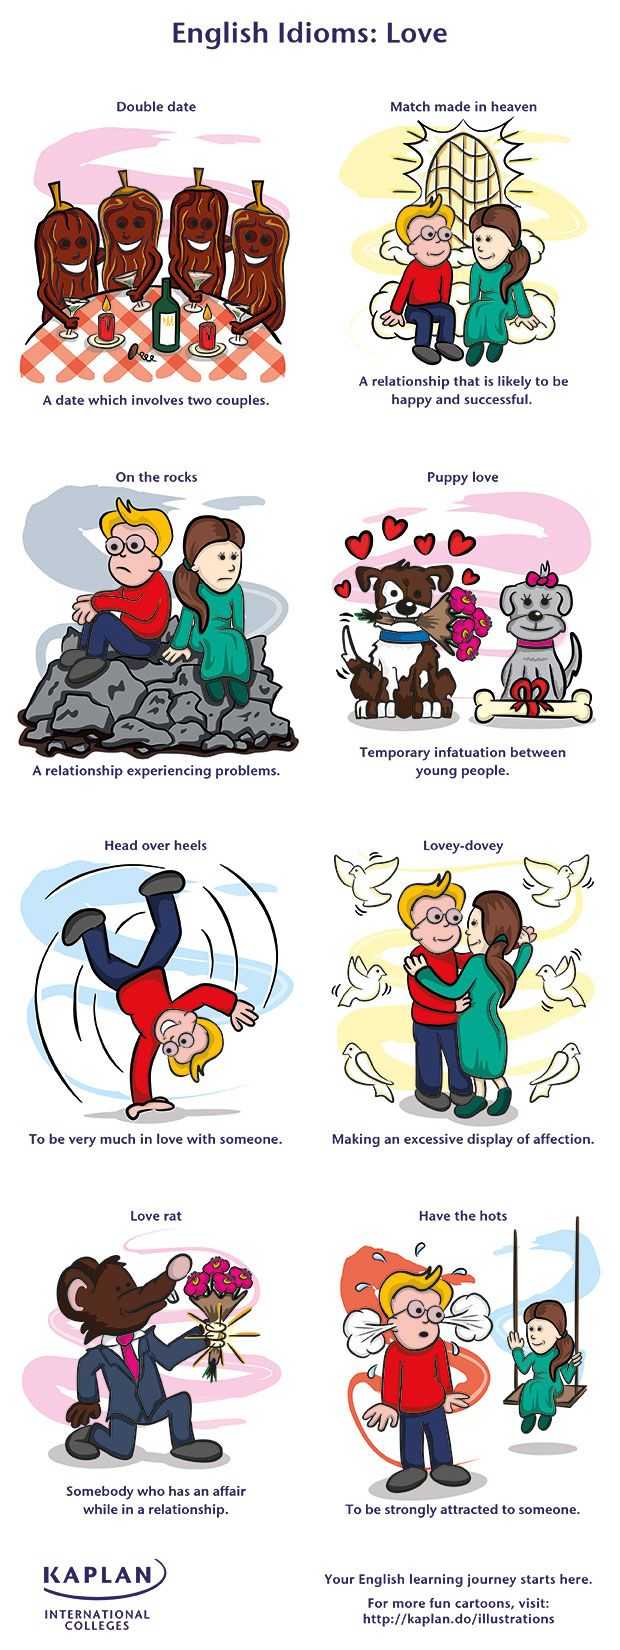 English Idioms: Love - Kaplan International Colleges Blog - repinned by @PediaStaff – Please Visit ht.ly/63sNt for all our ped therapy, school & special ed pins